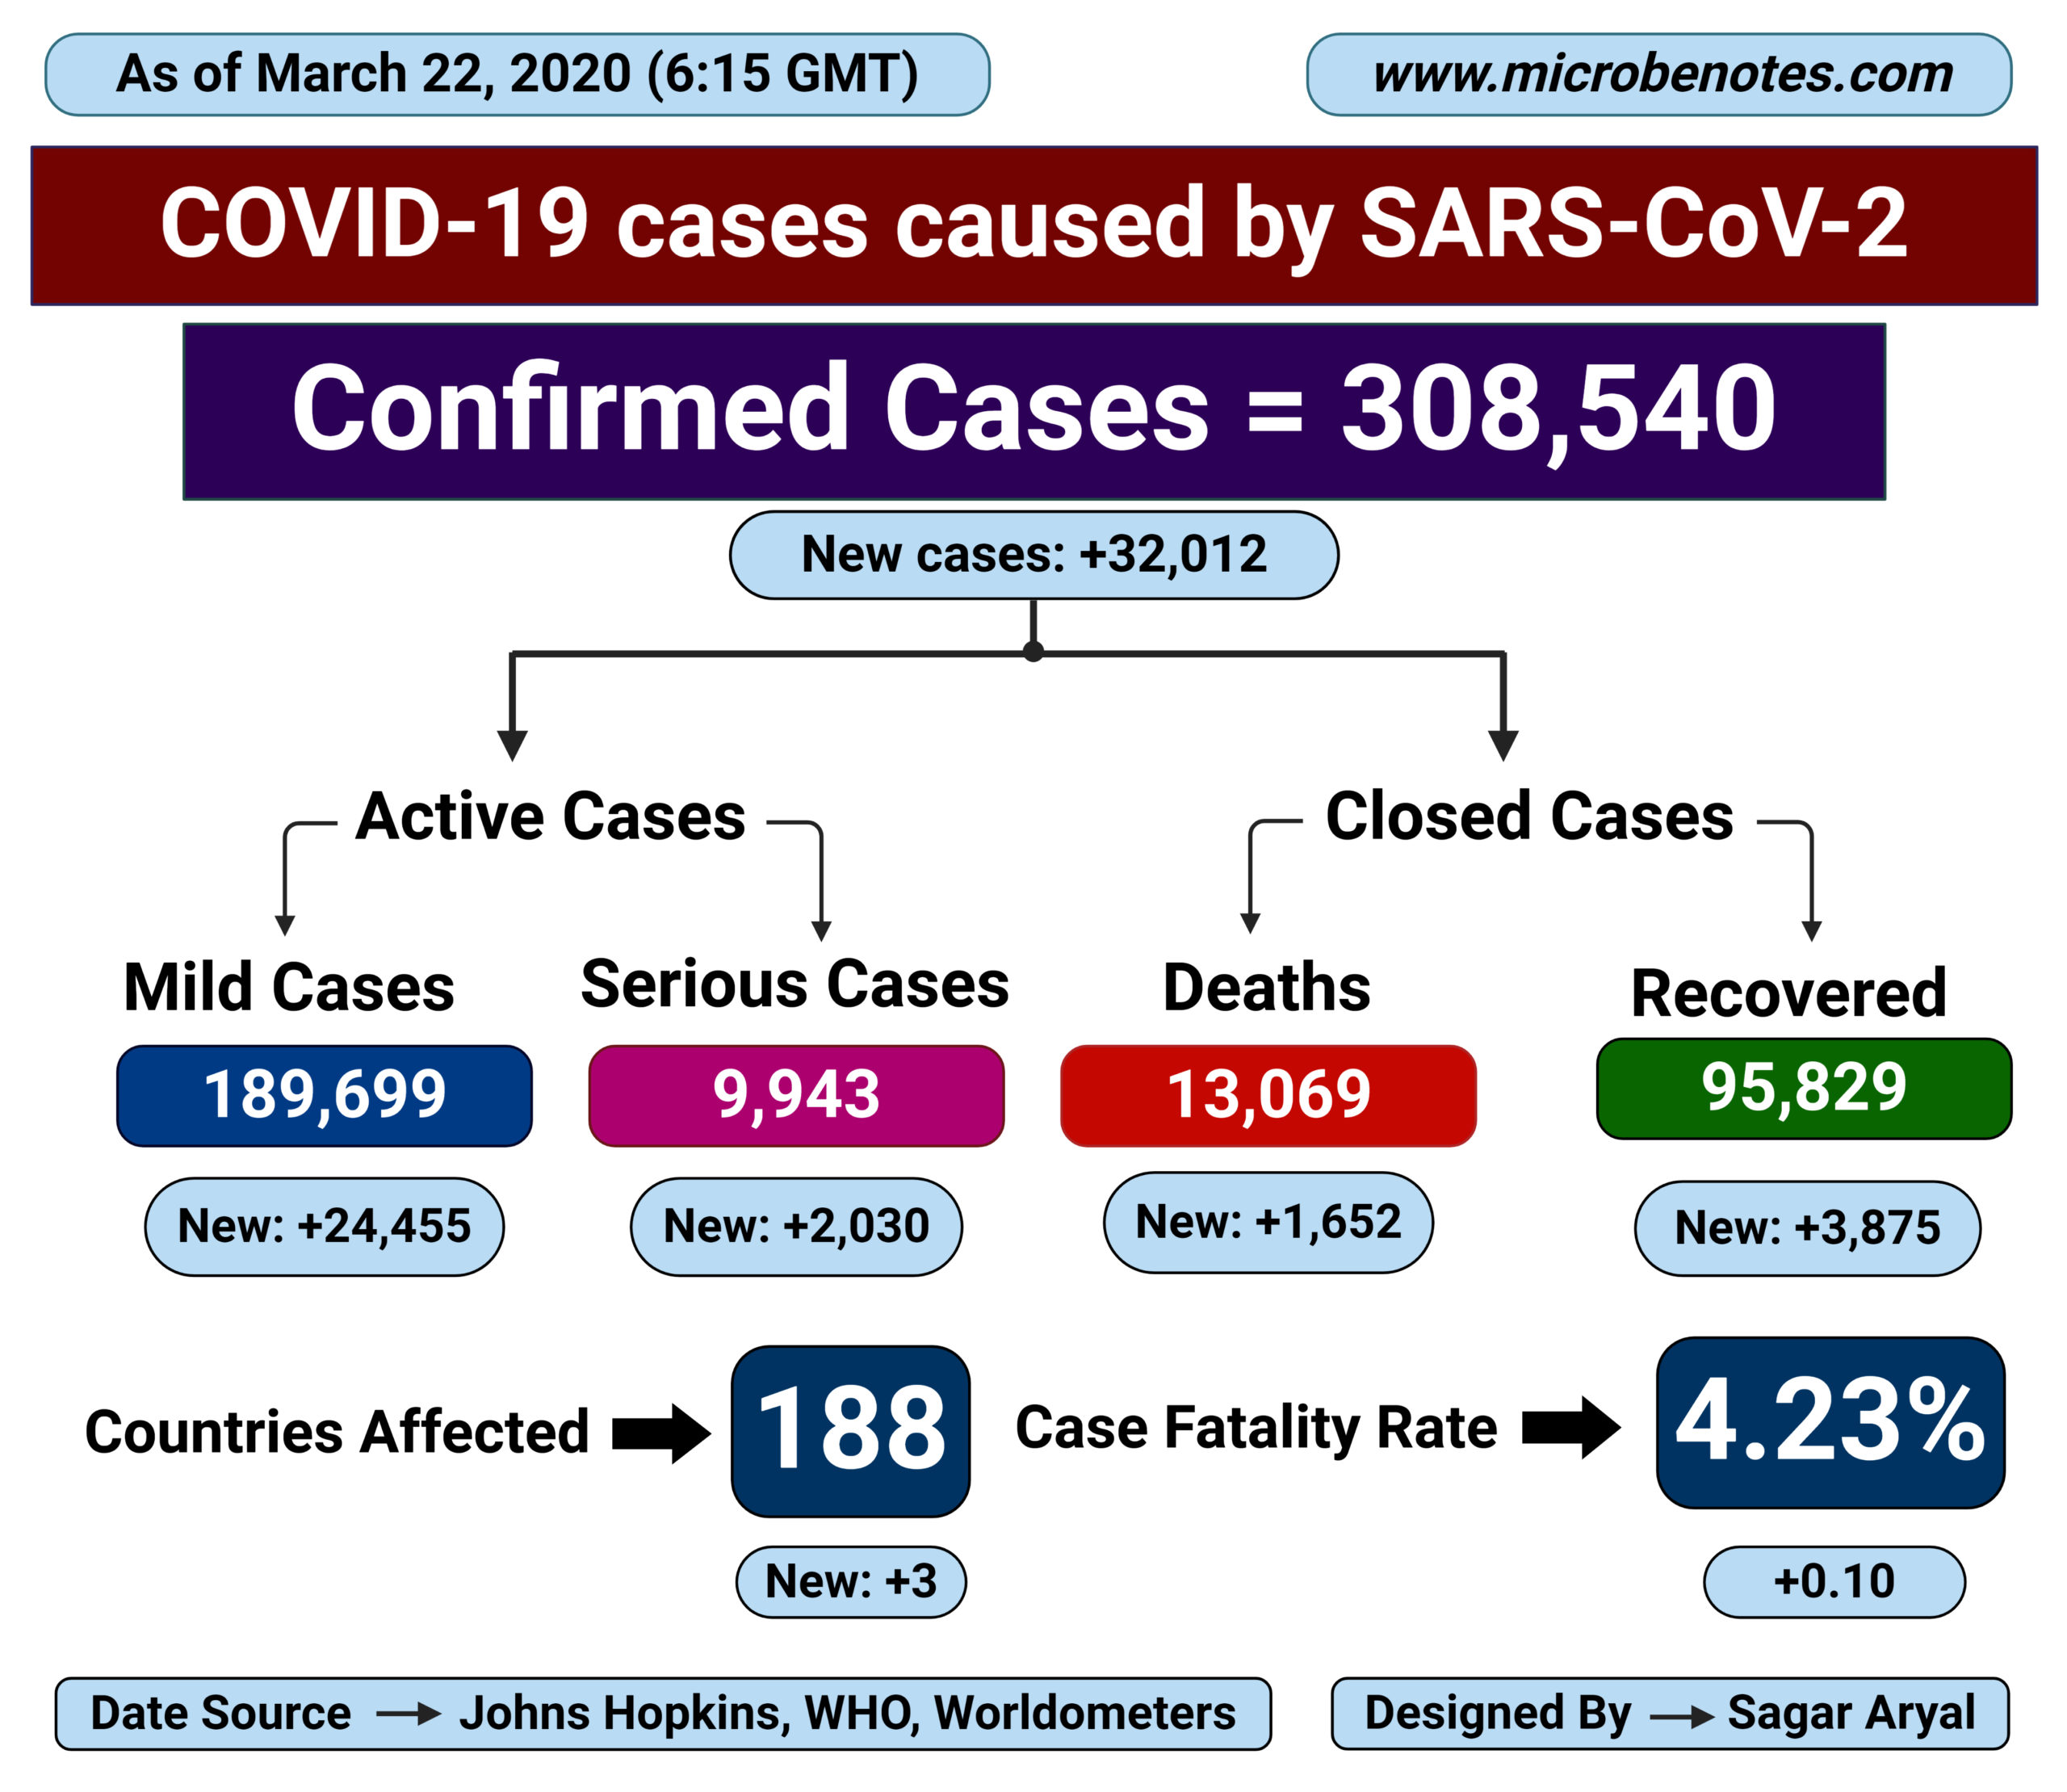 Epidemiology of COVID-19 caused by SARS-CoV-2 as of March 22, 2020